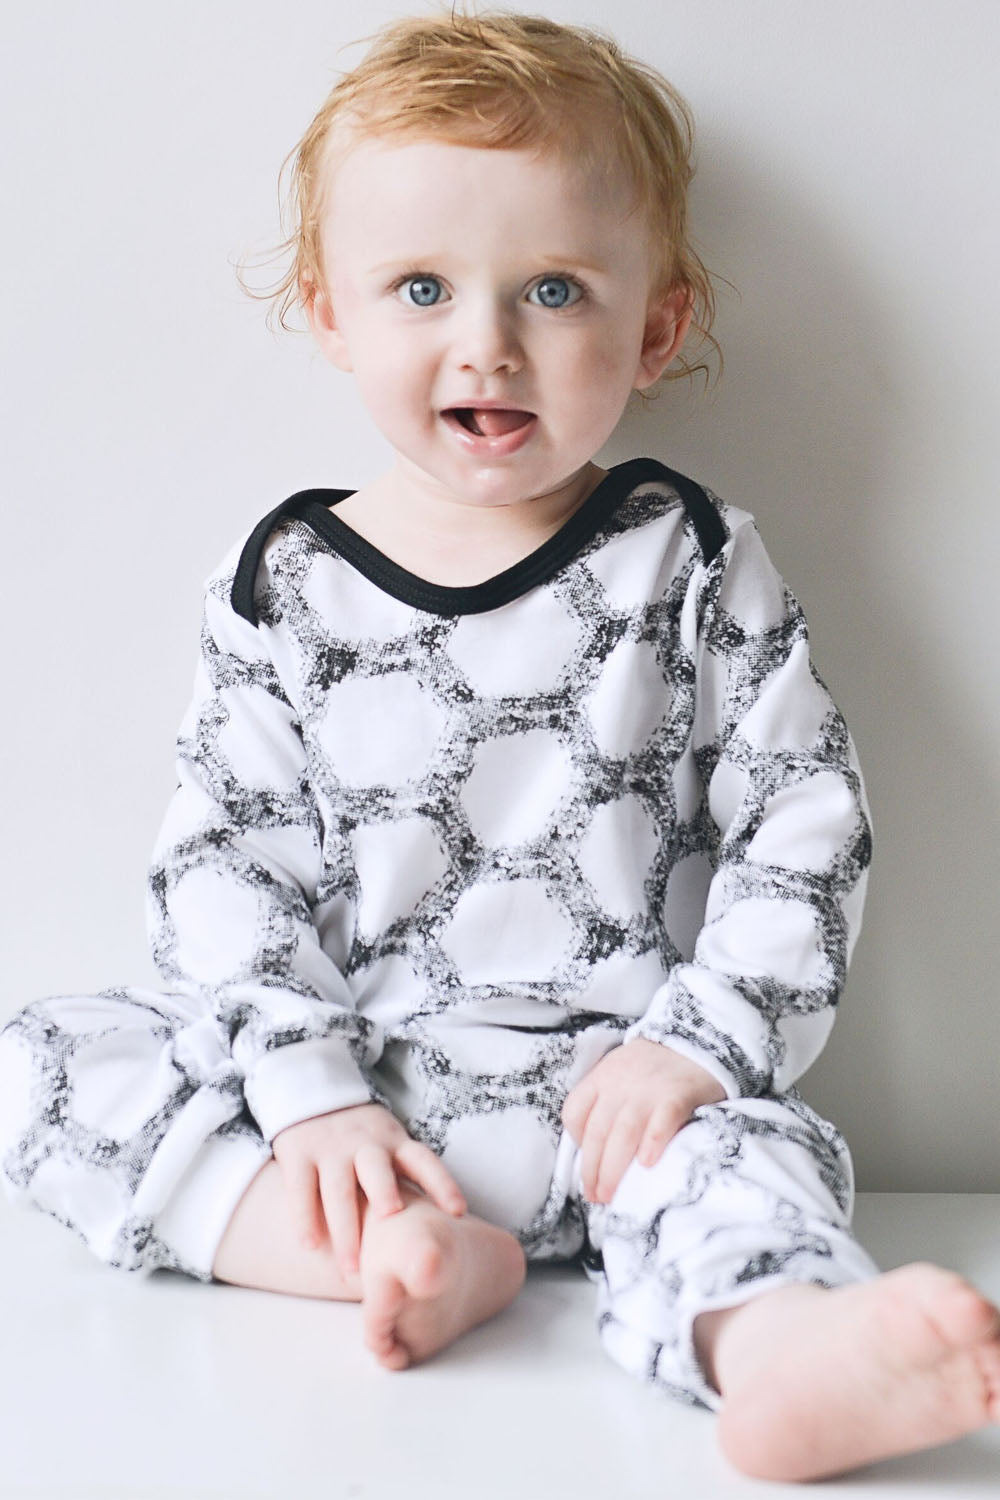 Super soft 100% cotton baby romper, vegan friendly and made in Britain.